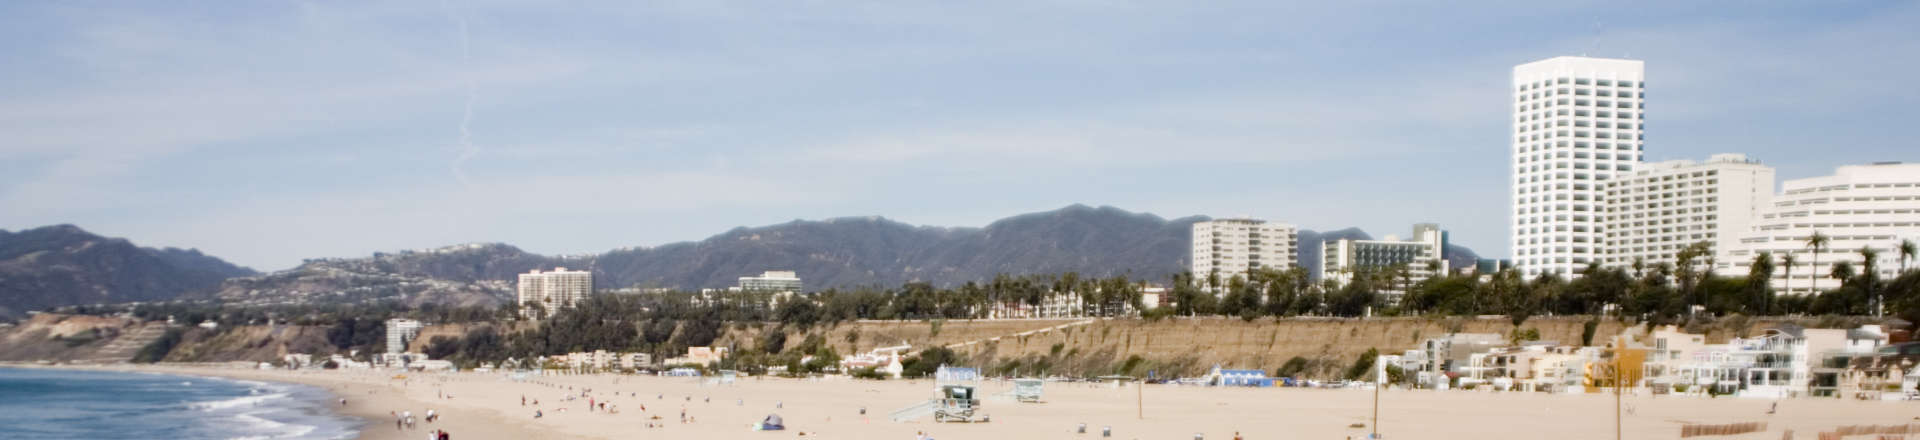 view of the coast of Santa Monica, CA